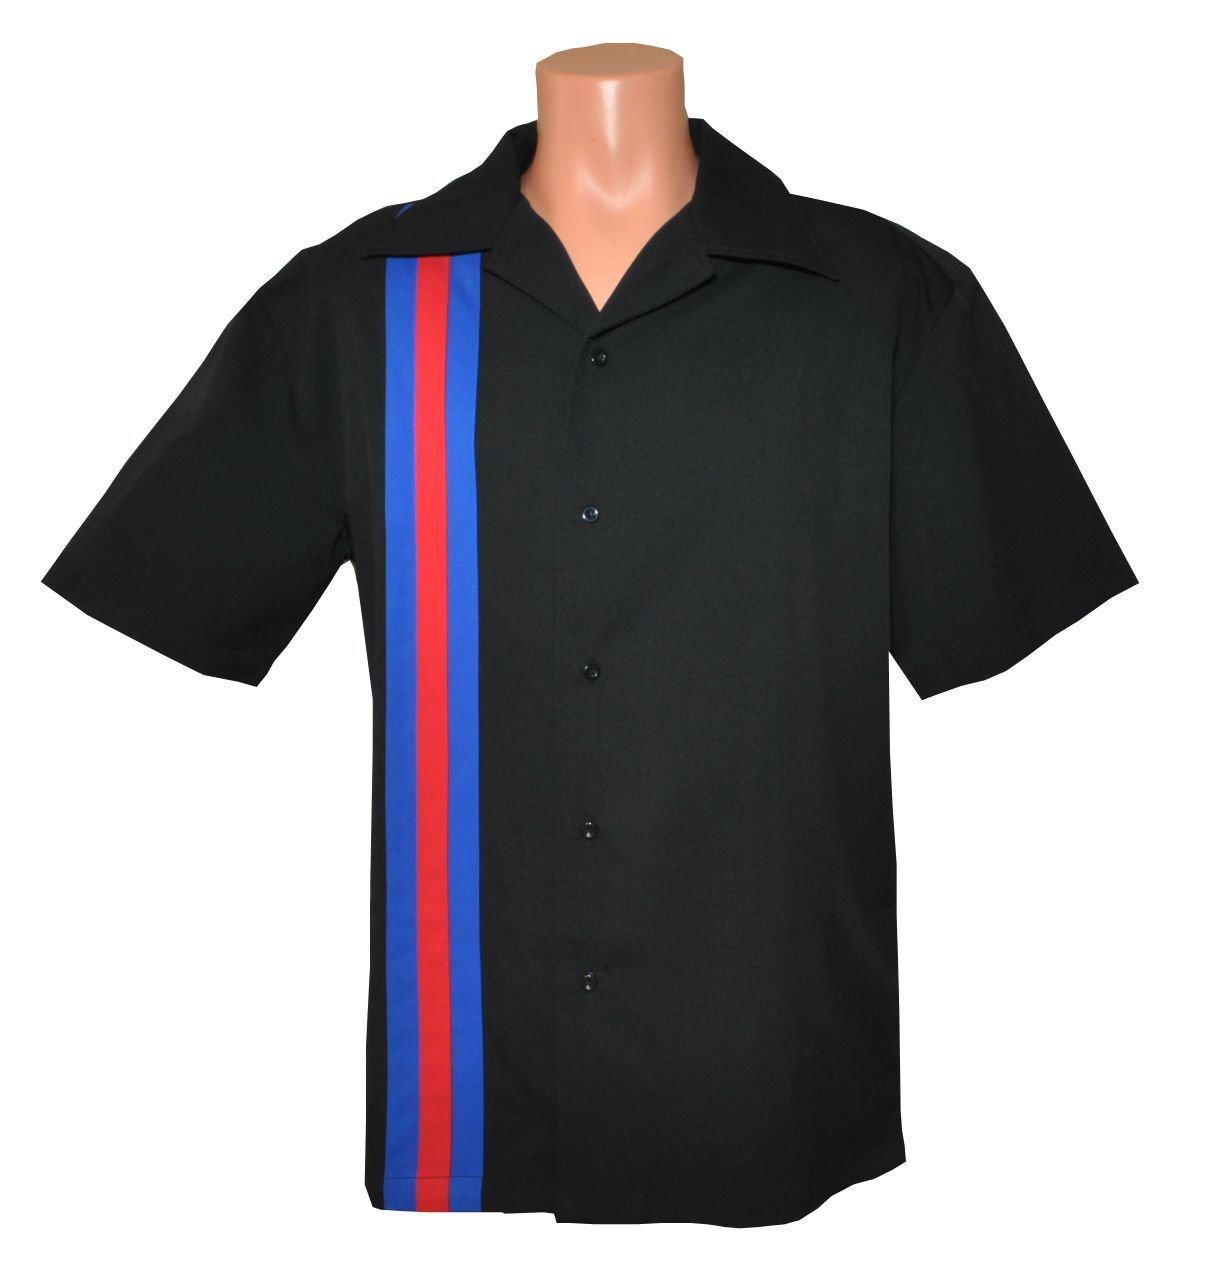 Designs by Attila Mens Leisure Bowling Shirt, 50's Style. Size XLarge USMC by Designs by Attila